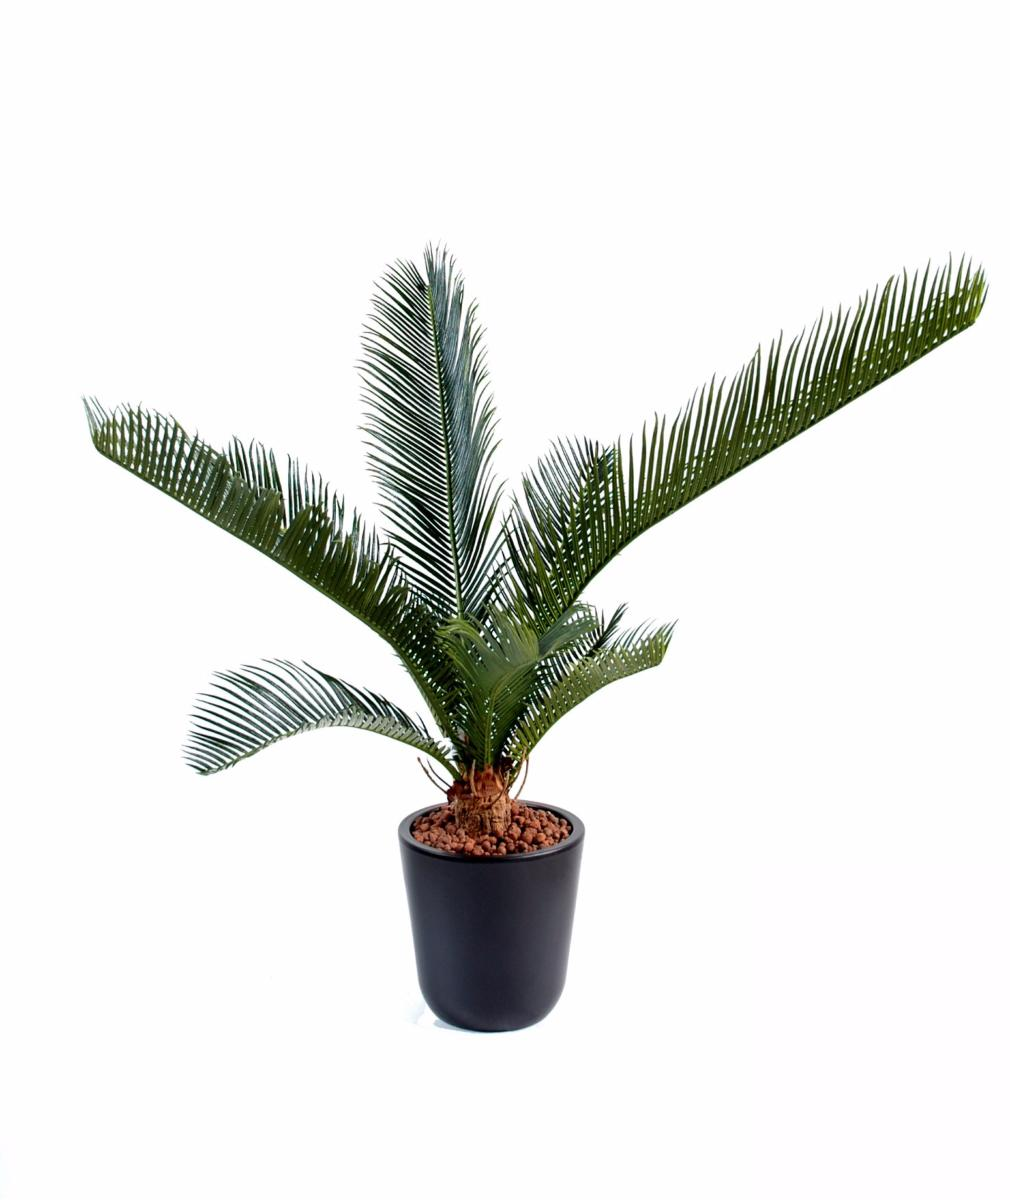 Palmier artificiel cycas baby 10 feuilles int rieur for Palmiers artificiels